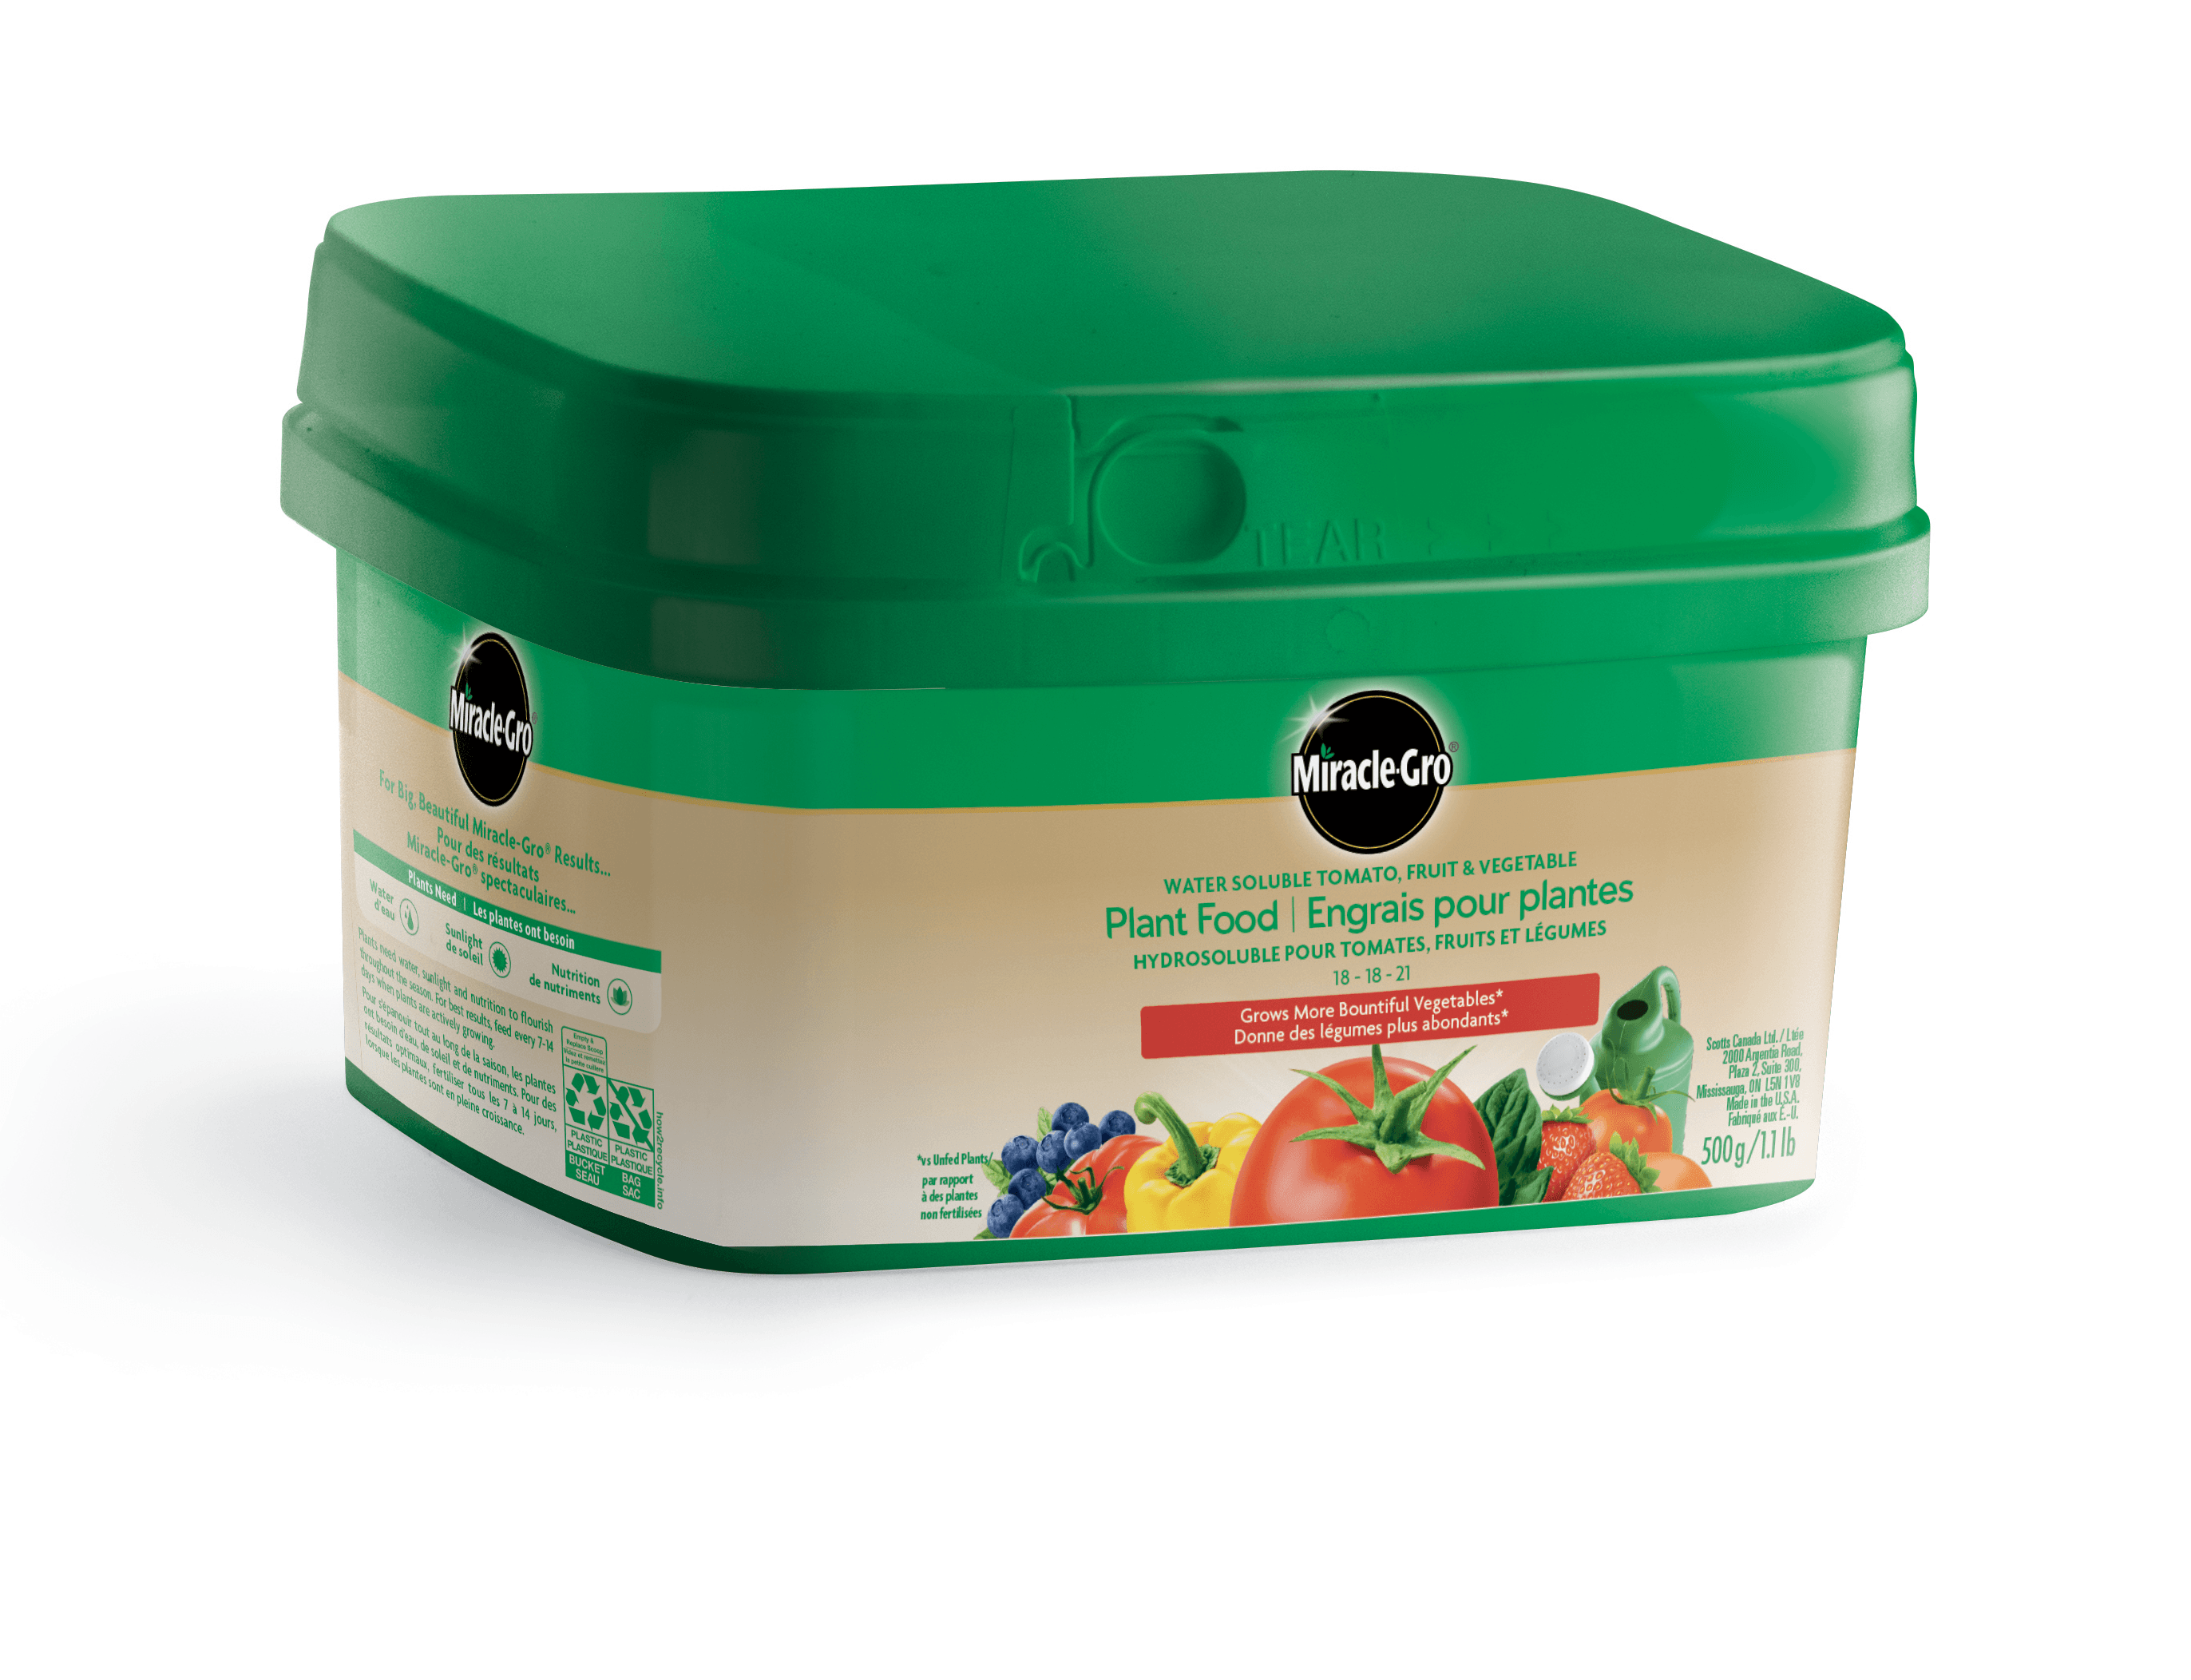 Fruits 21 Png - Water Soluble Tomato, Fruit & Vegetable Plant Food   Miracle-Gro ...